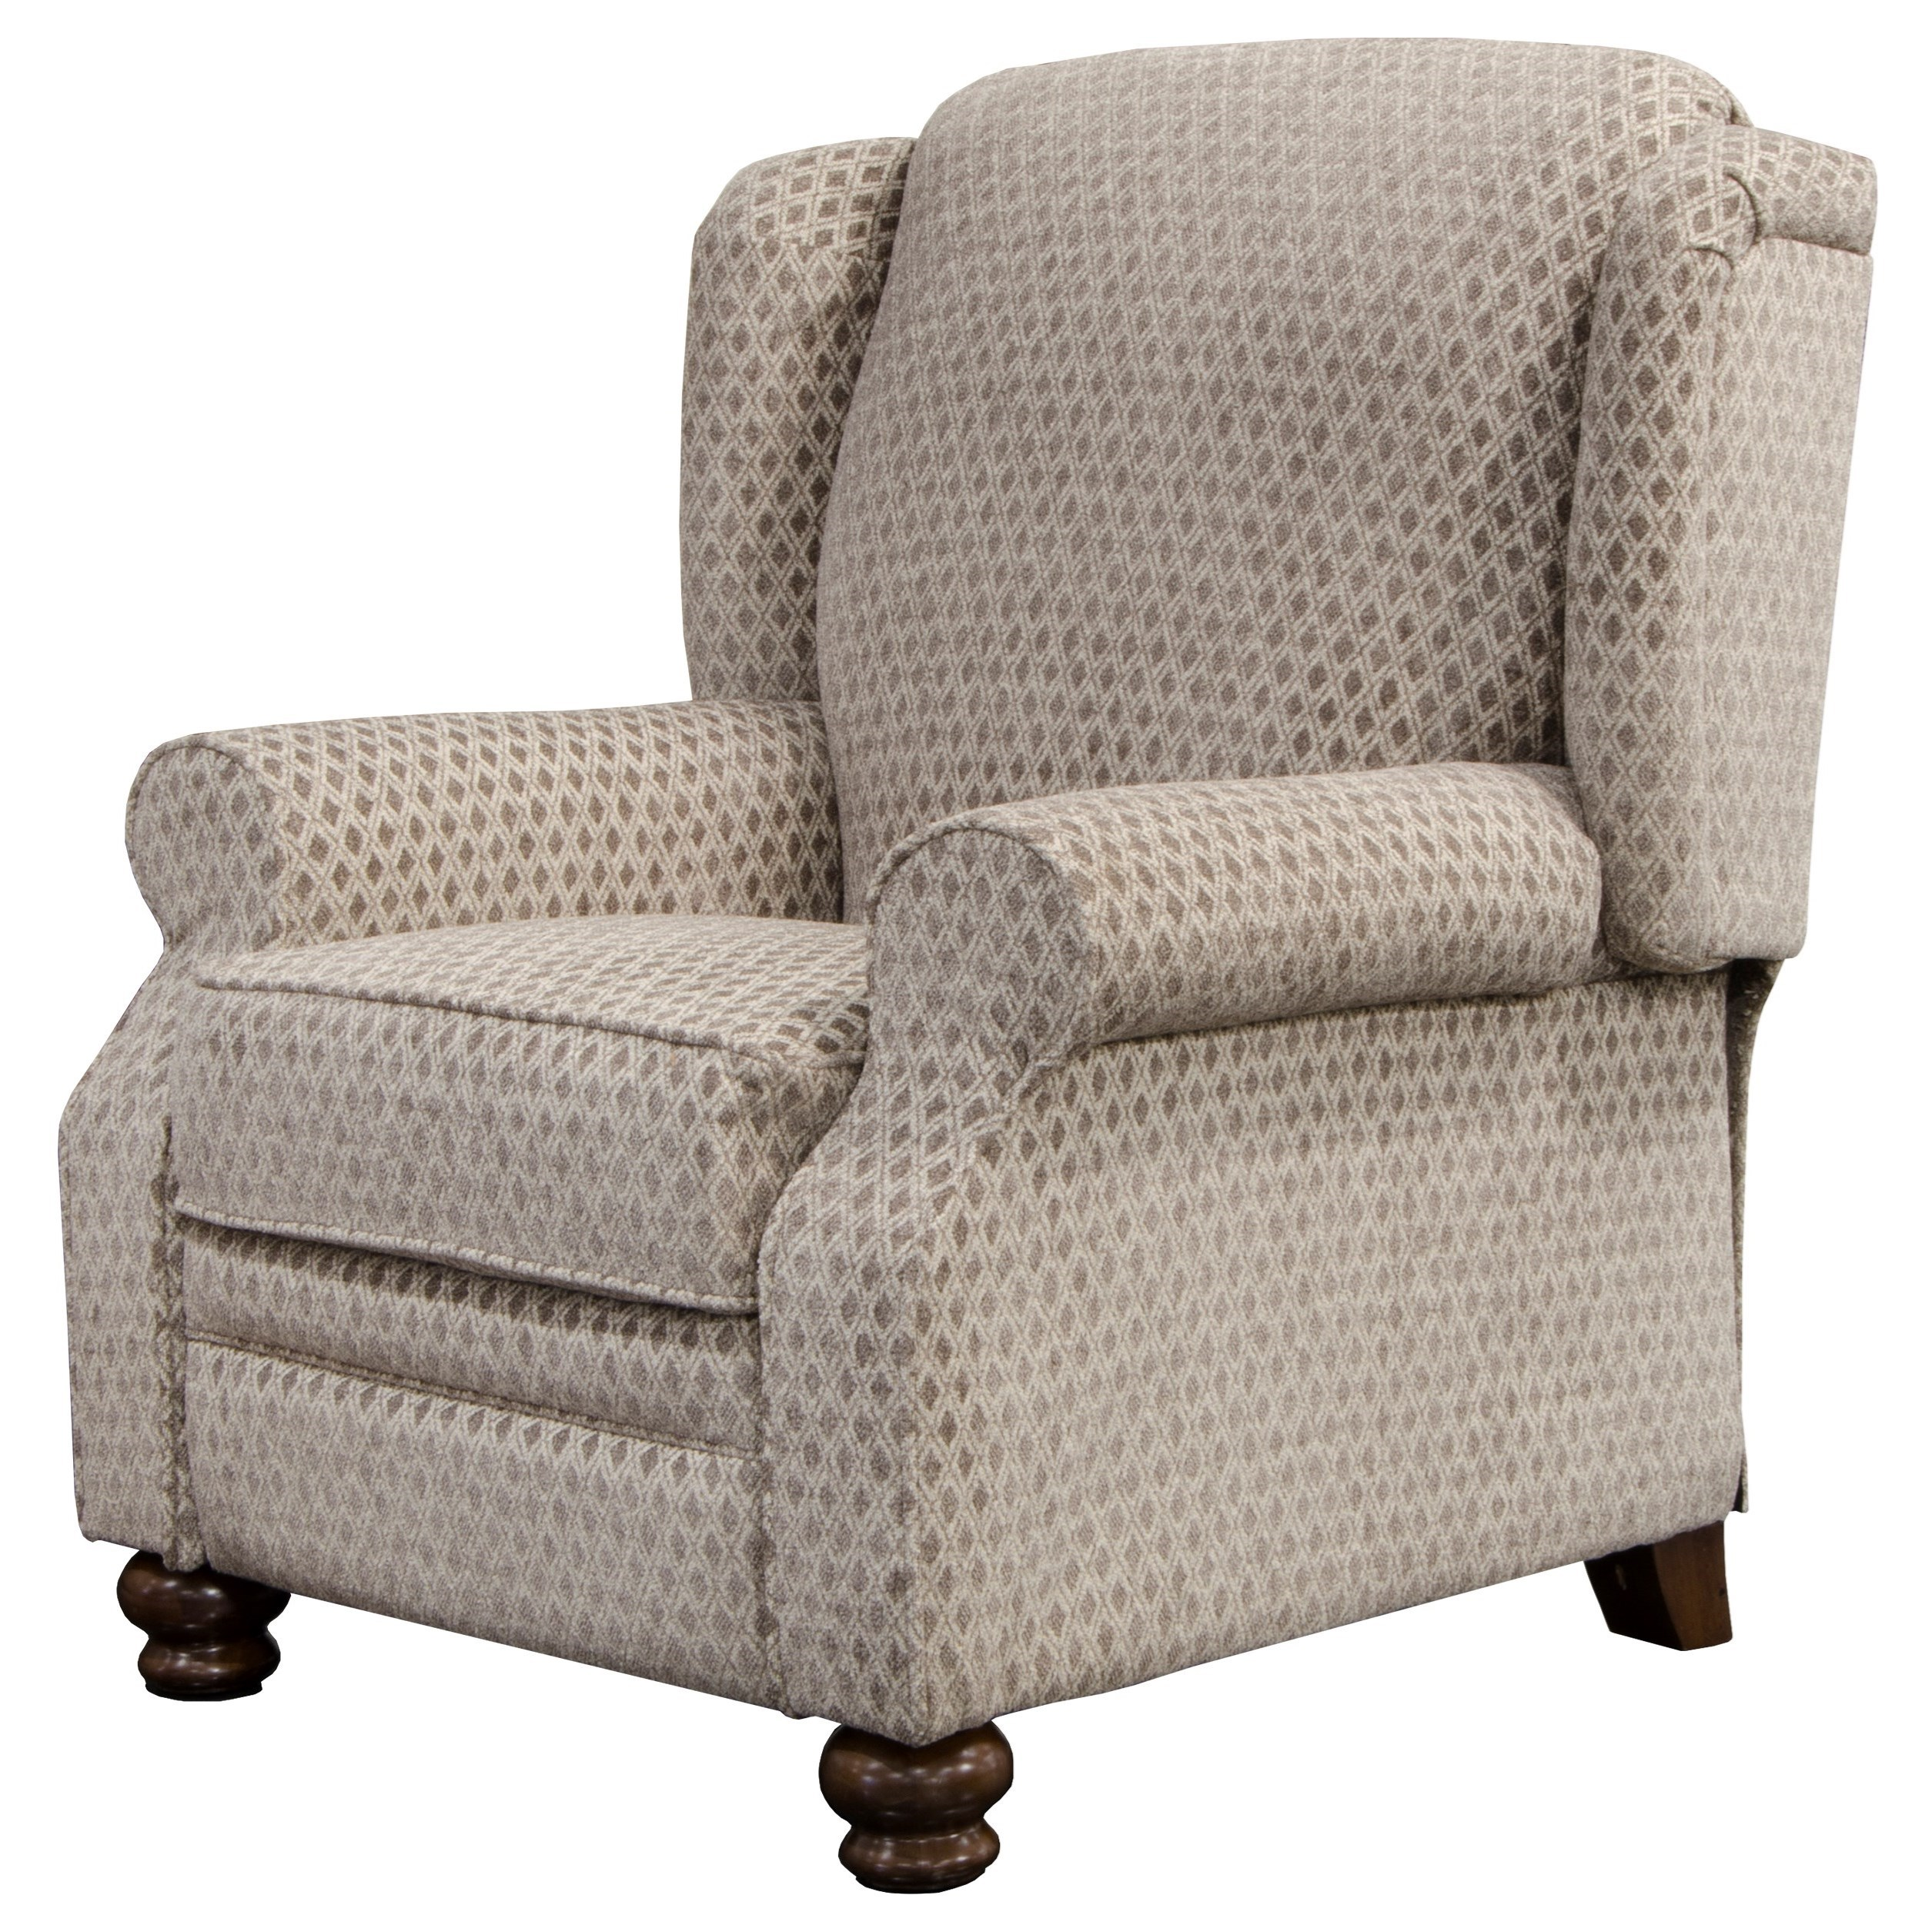 Freemont Reclining Chair by Jackson Furniture at Northeast Factory Direct